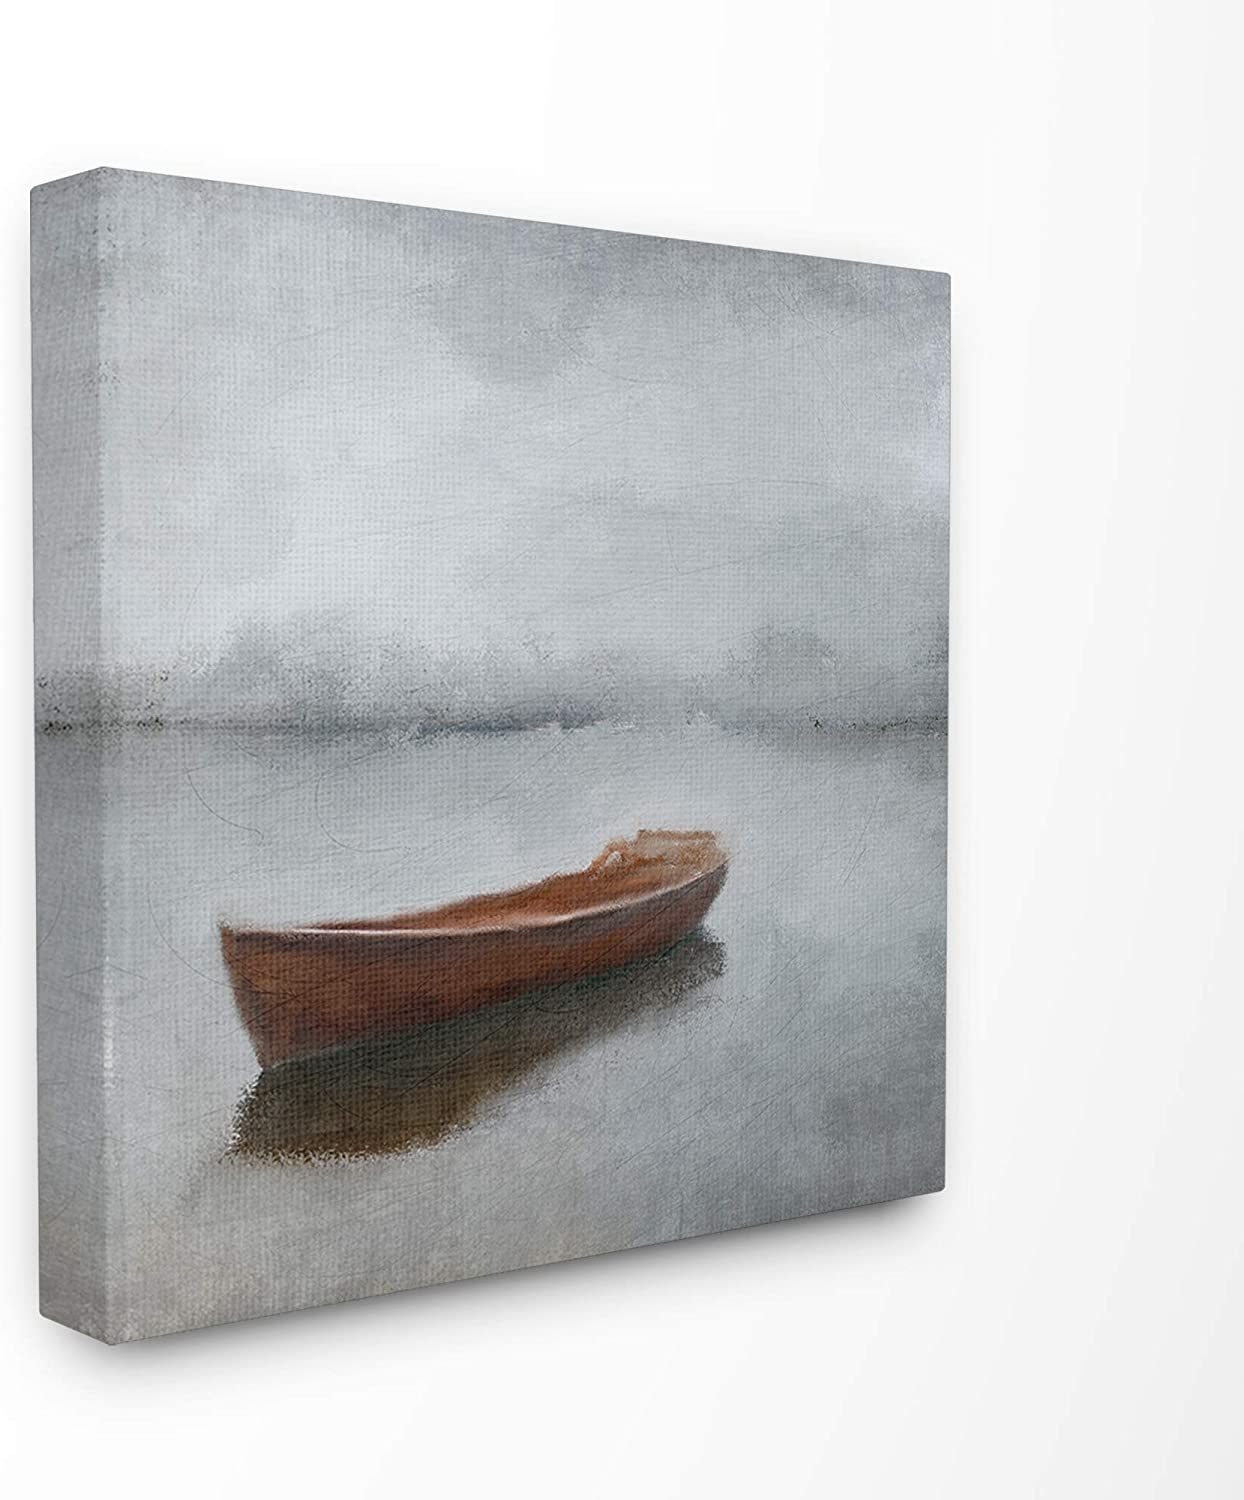 The Stupell Home Decor Calm Sea Soft Grey Horizon with Red Boat Stretched Canvas Wall Art 17 X 17 Multicolor